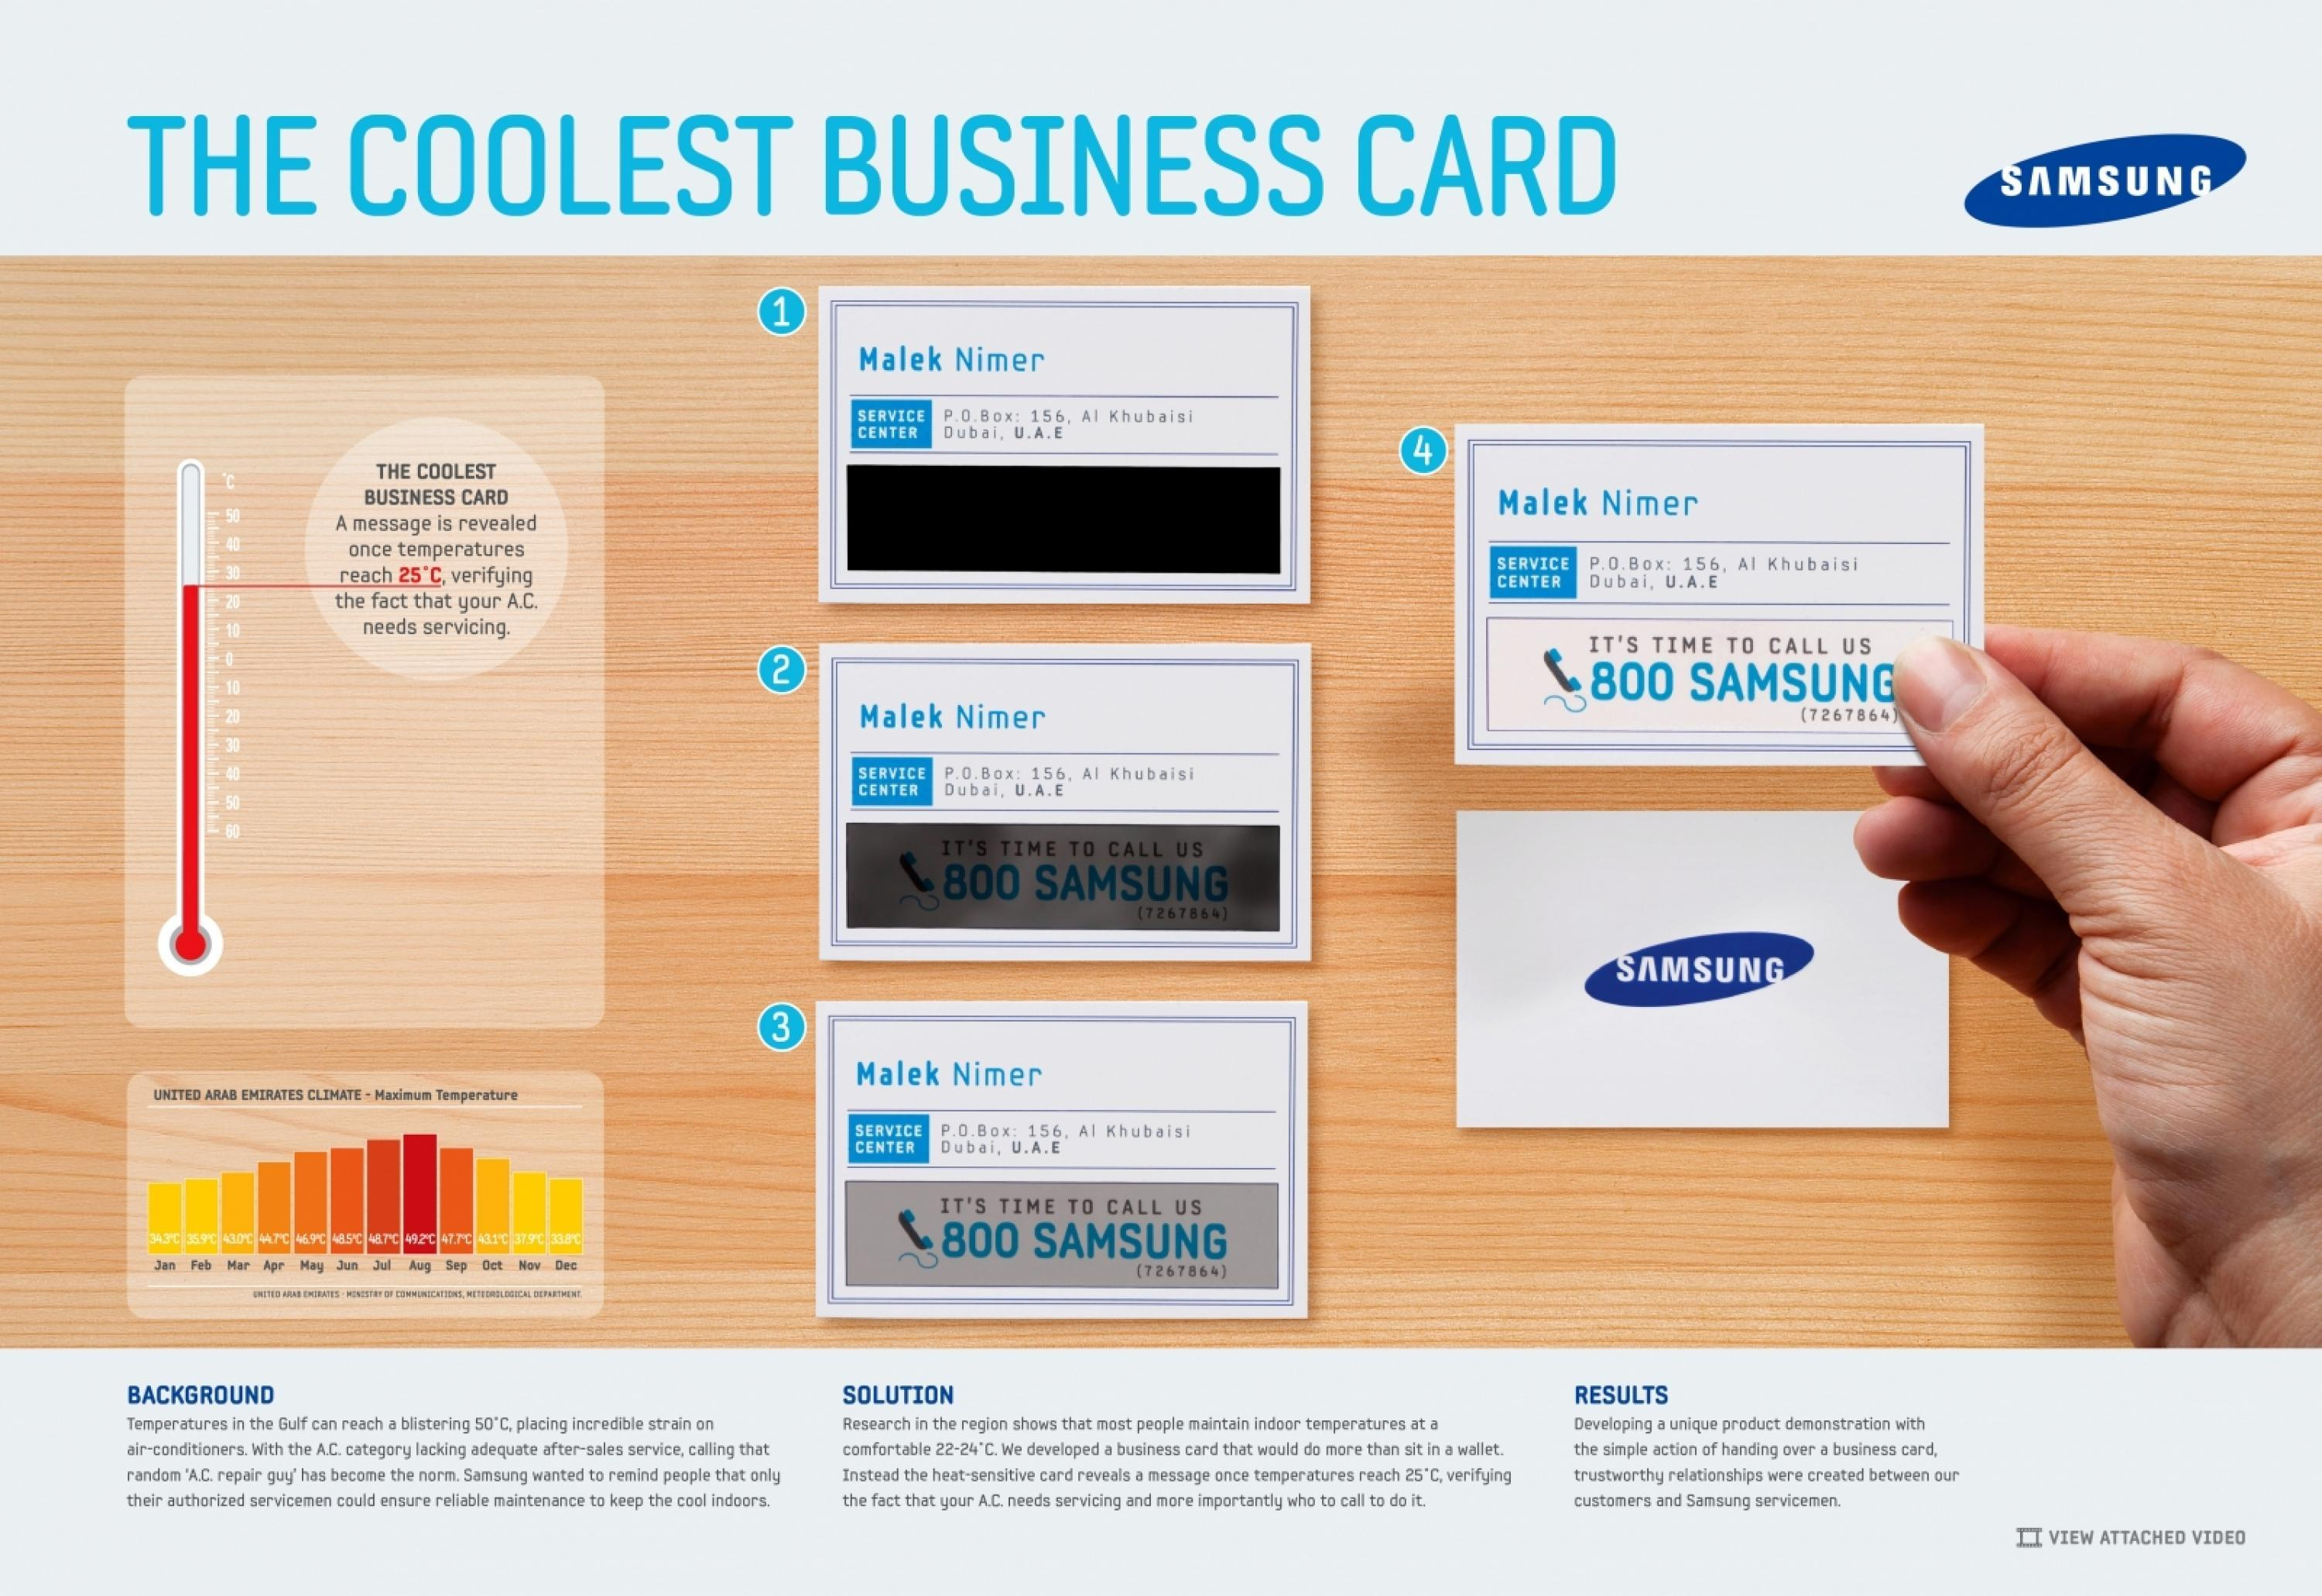 Samsung Air-Conditioning: The Coolest Business Card - Adeevee